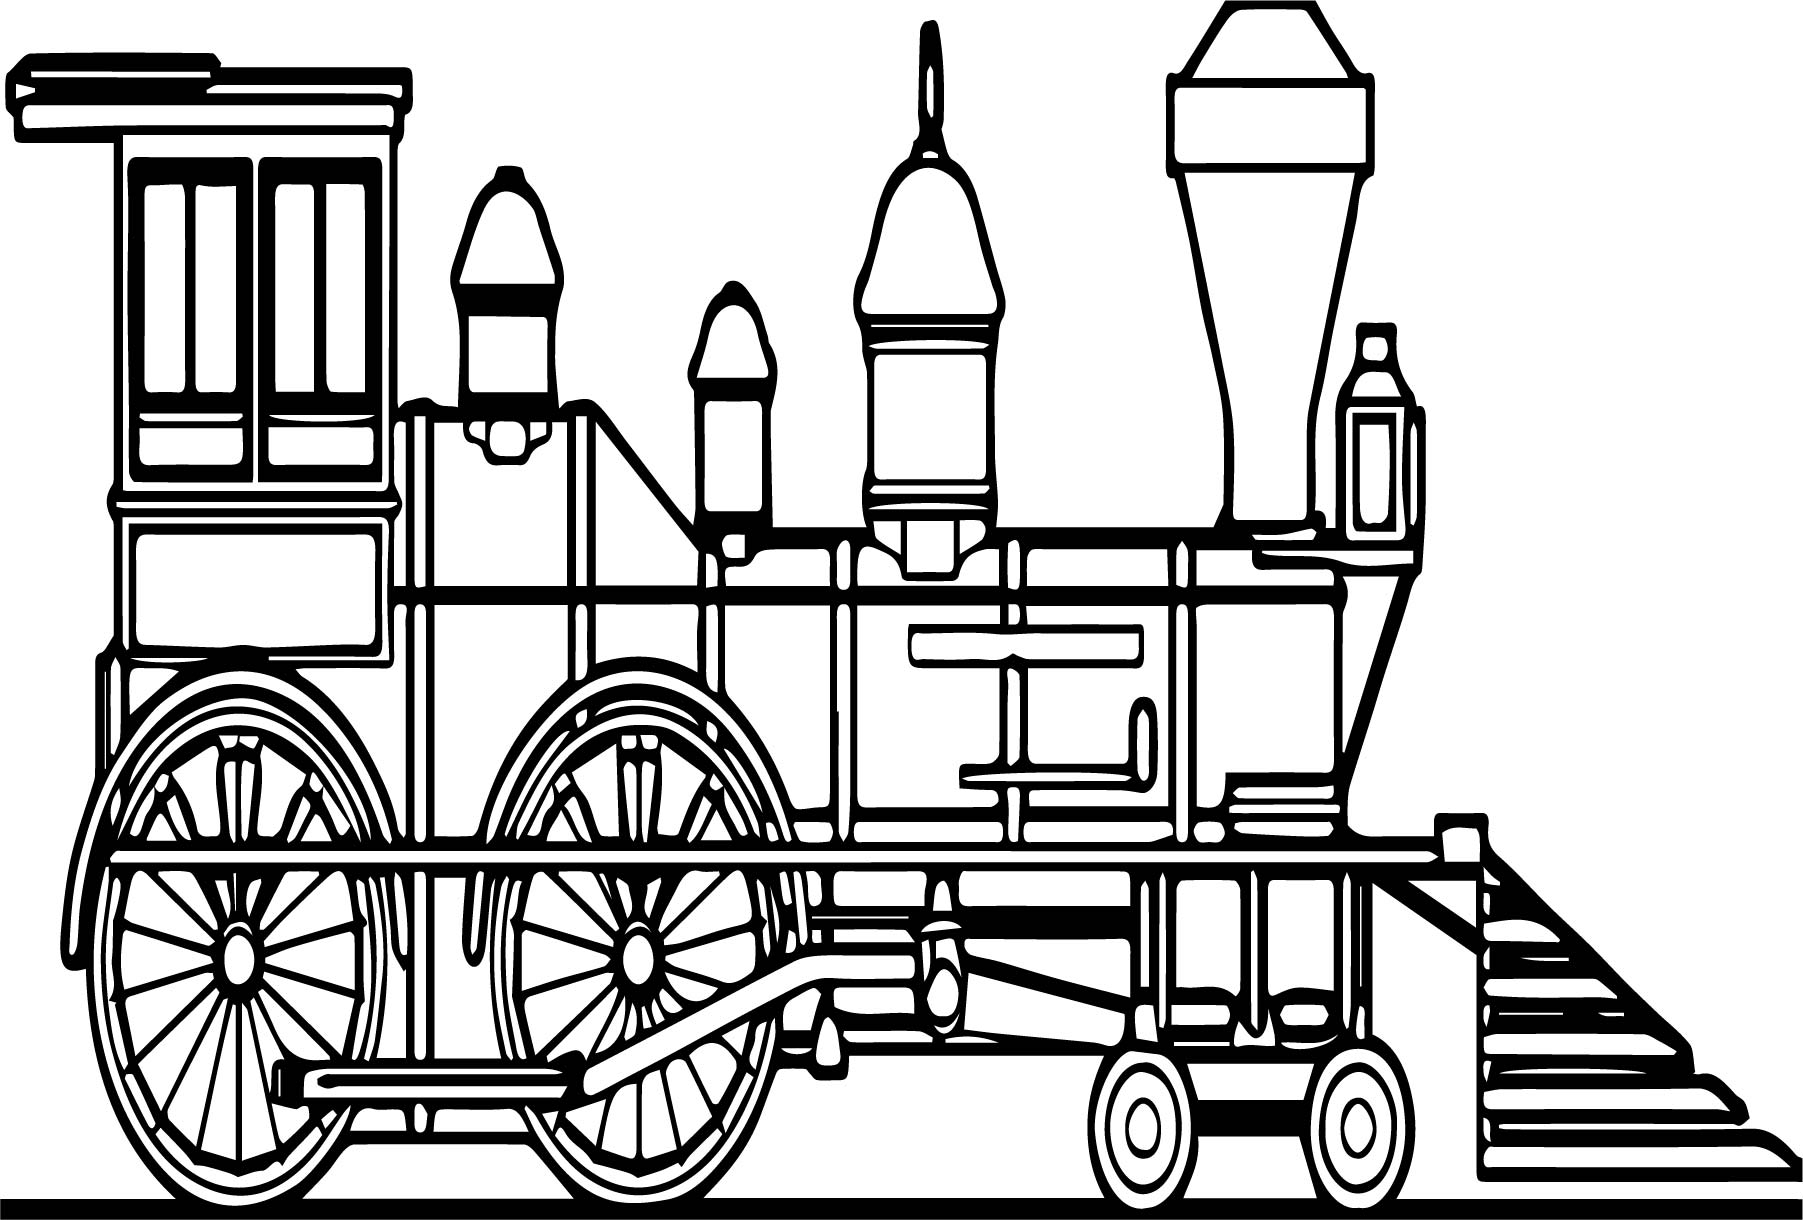 trains coloring pages free printable train coloring pages for kids cool2bkids trains coloring pages